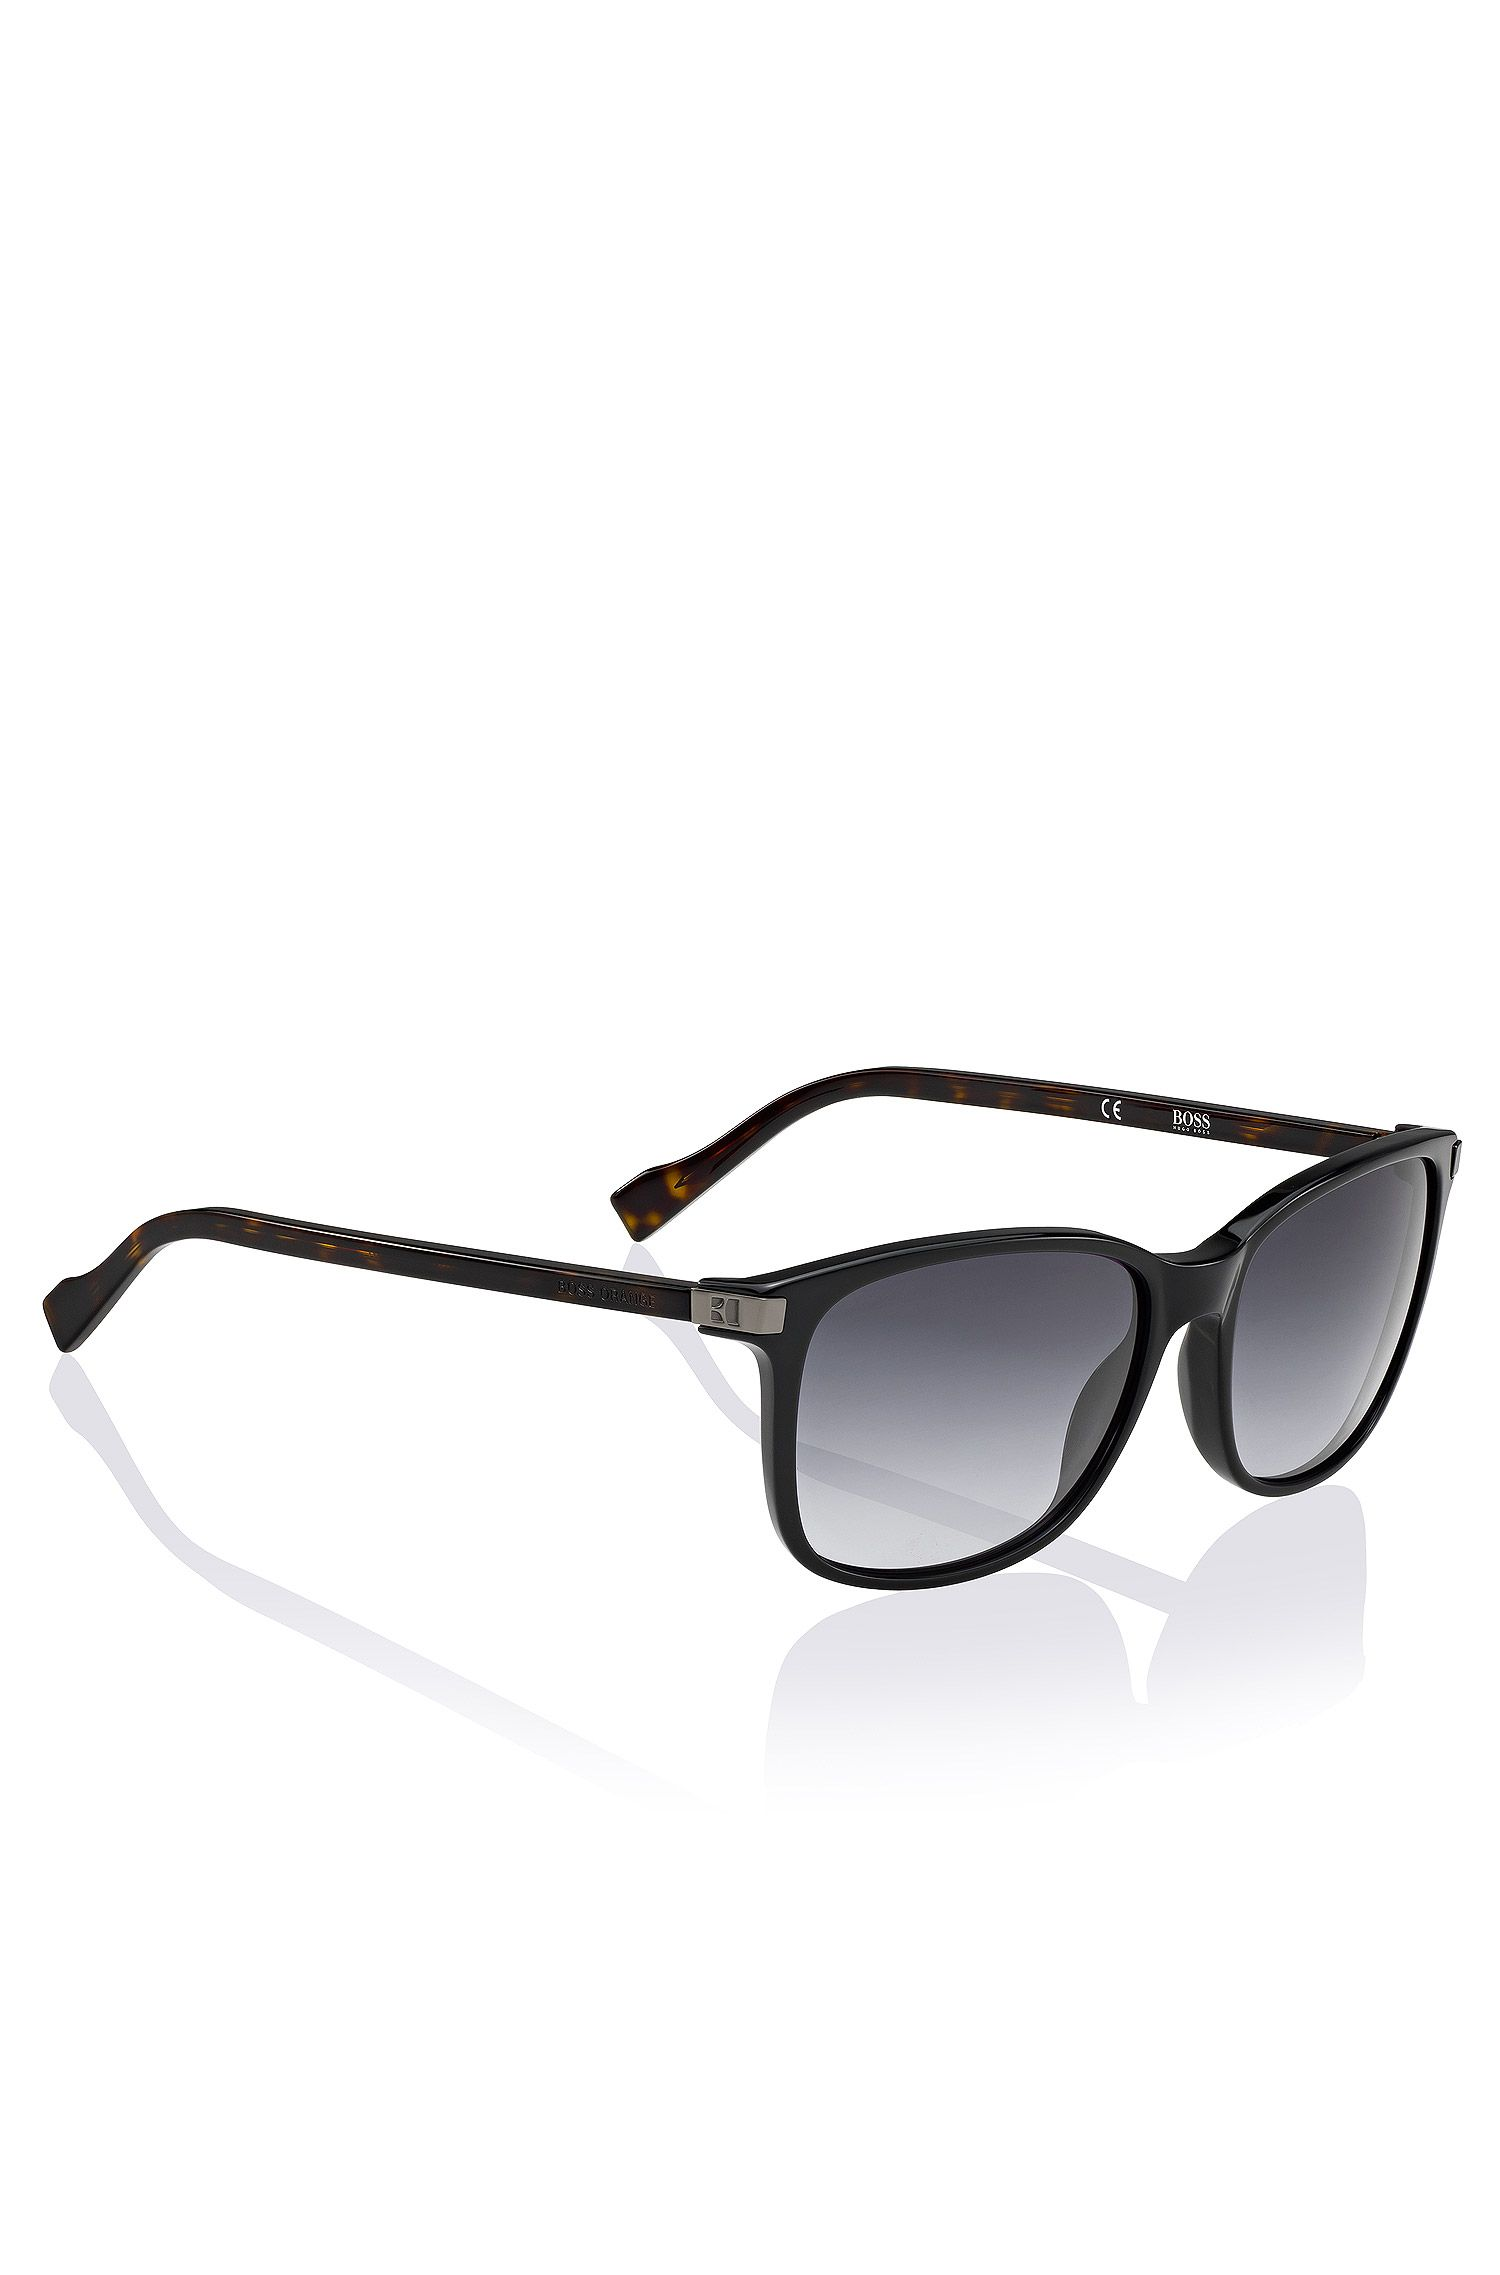 Vintage sunglasses 'BO 0179/S' in acetate